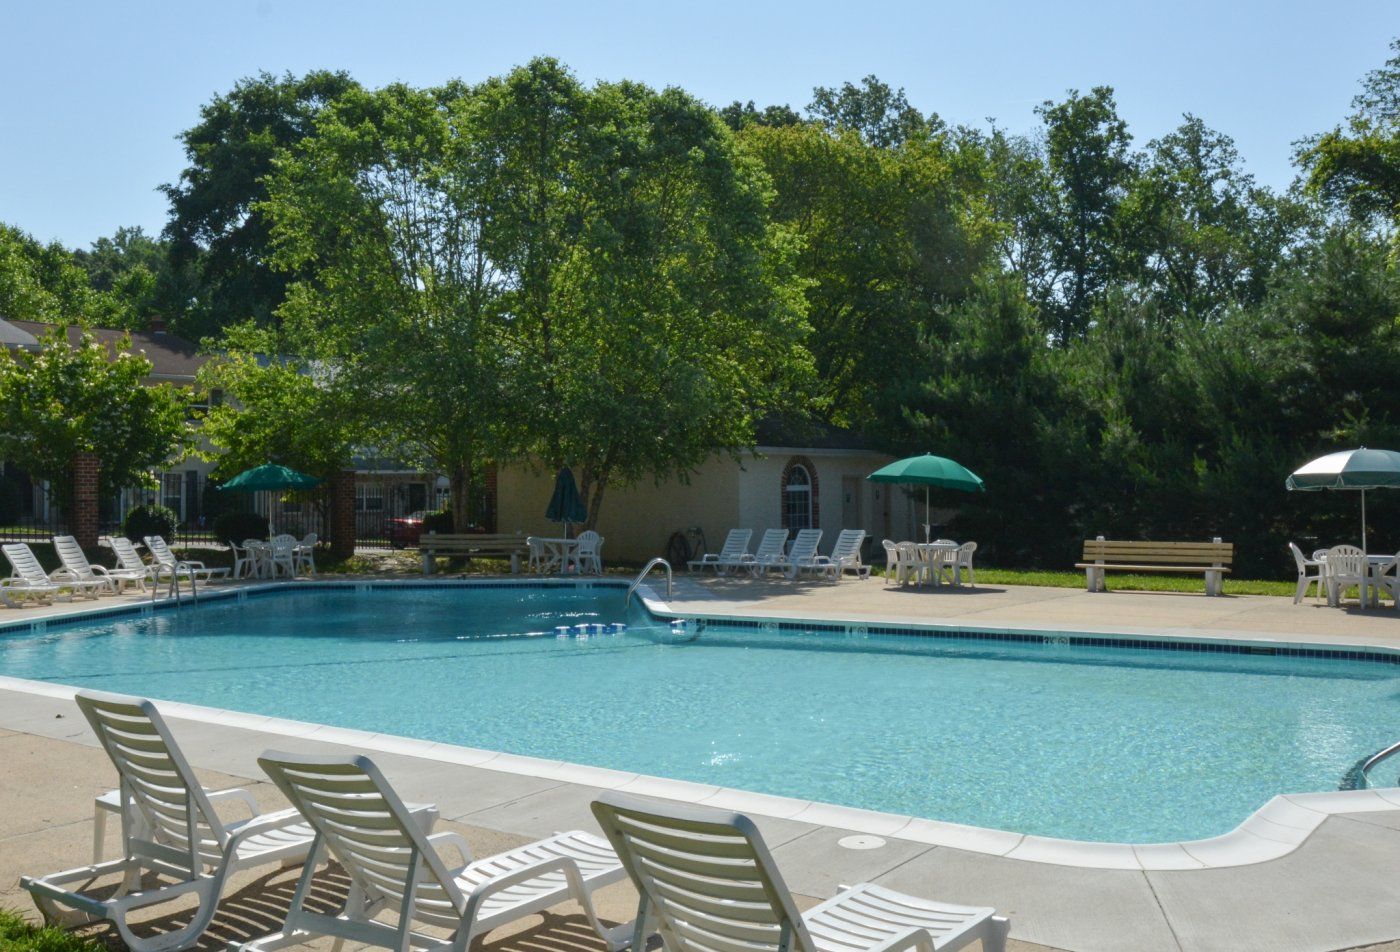 Swimming Pool | Apartment Homes in Boothwyn, PA | Rolling Glen Townhomes and Apartments